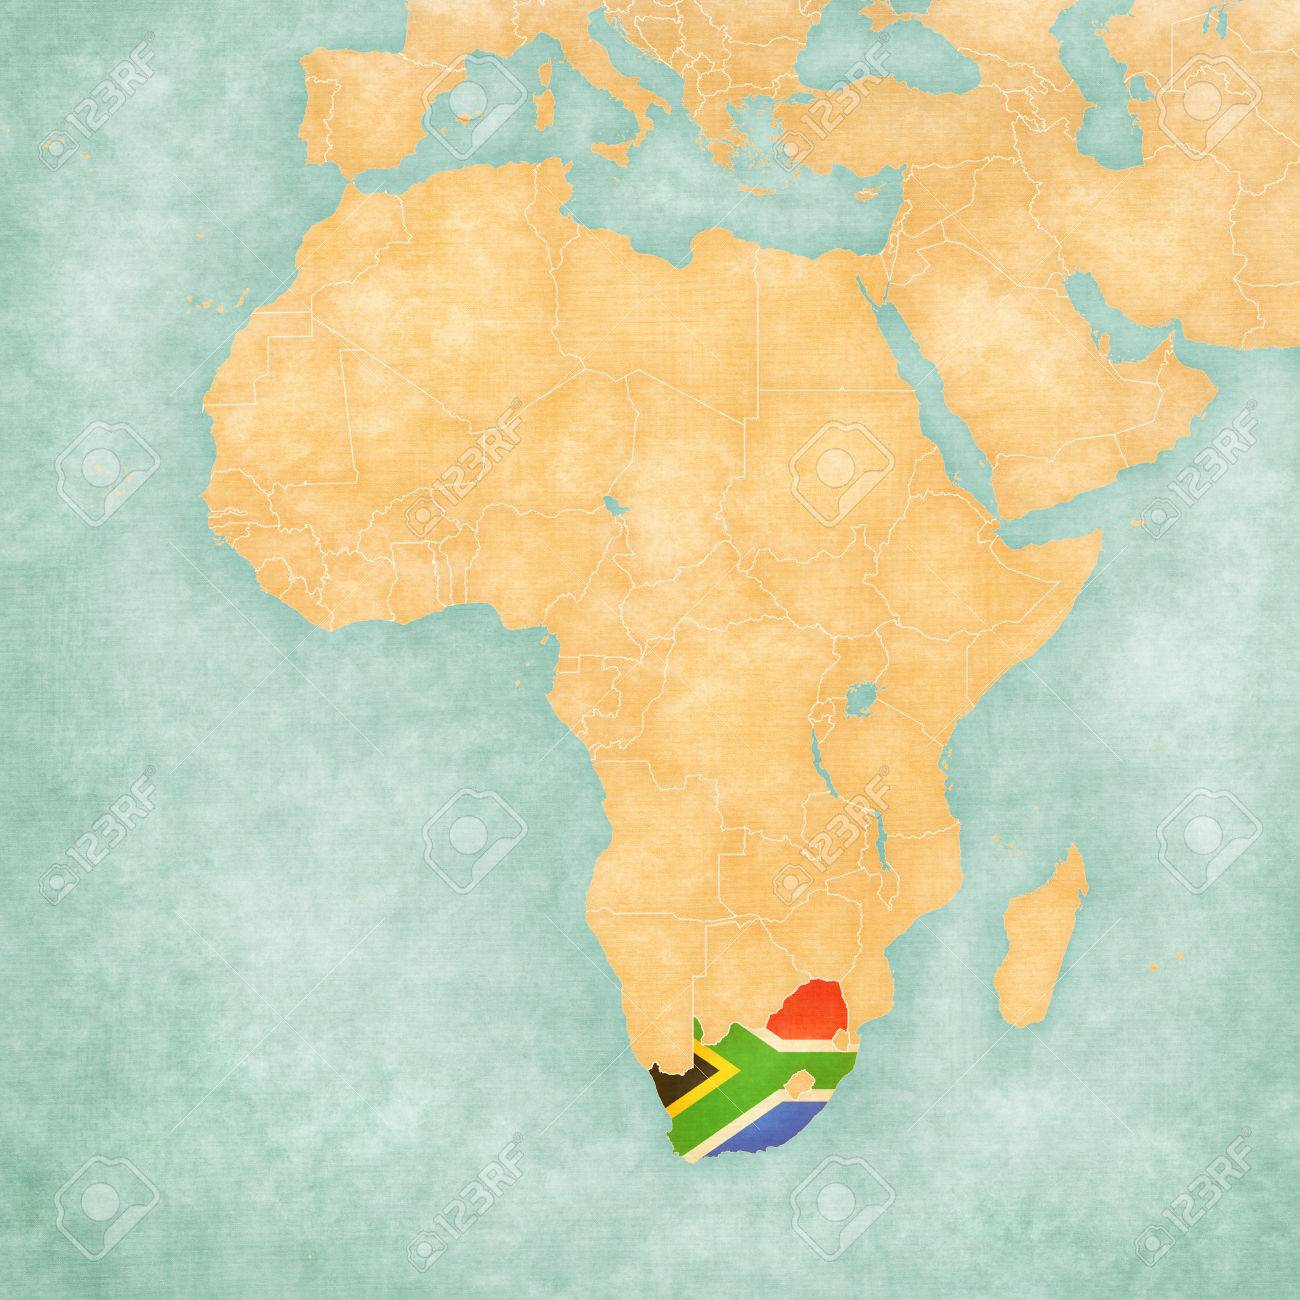 South Africa Flag In Africa Map.South Africa South African Flag On The Map Of Africa The Map